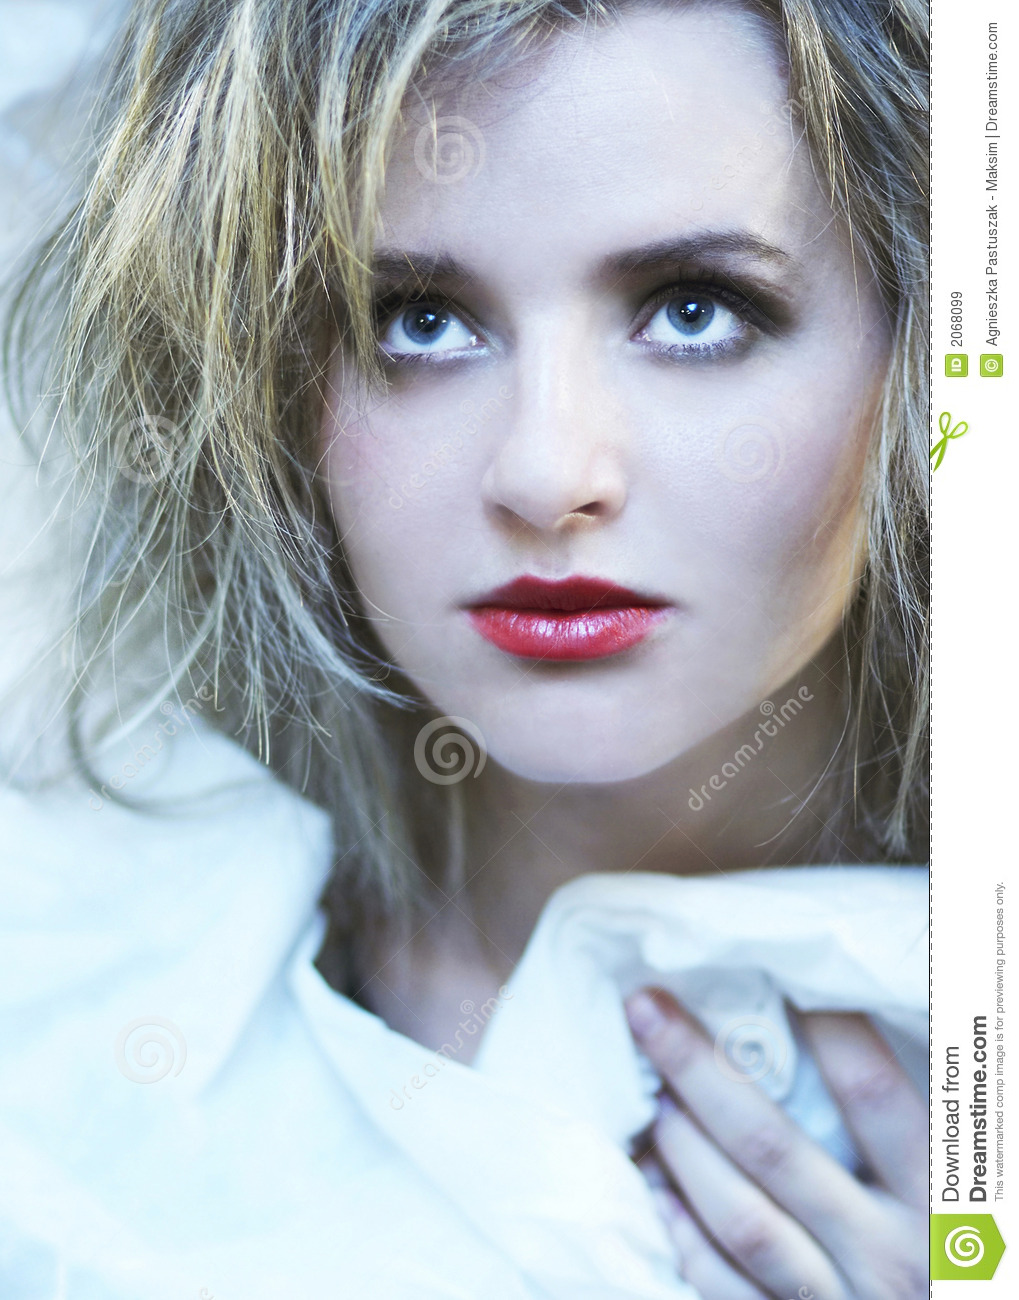 Download Cold beauty stock image. Image of beautiful, human, expression - 2068099